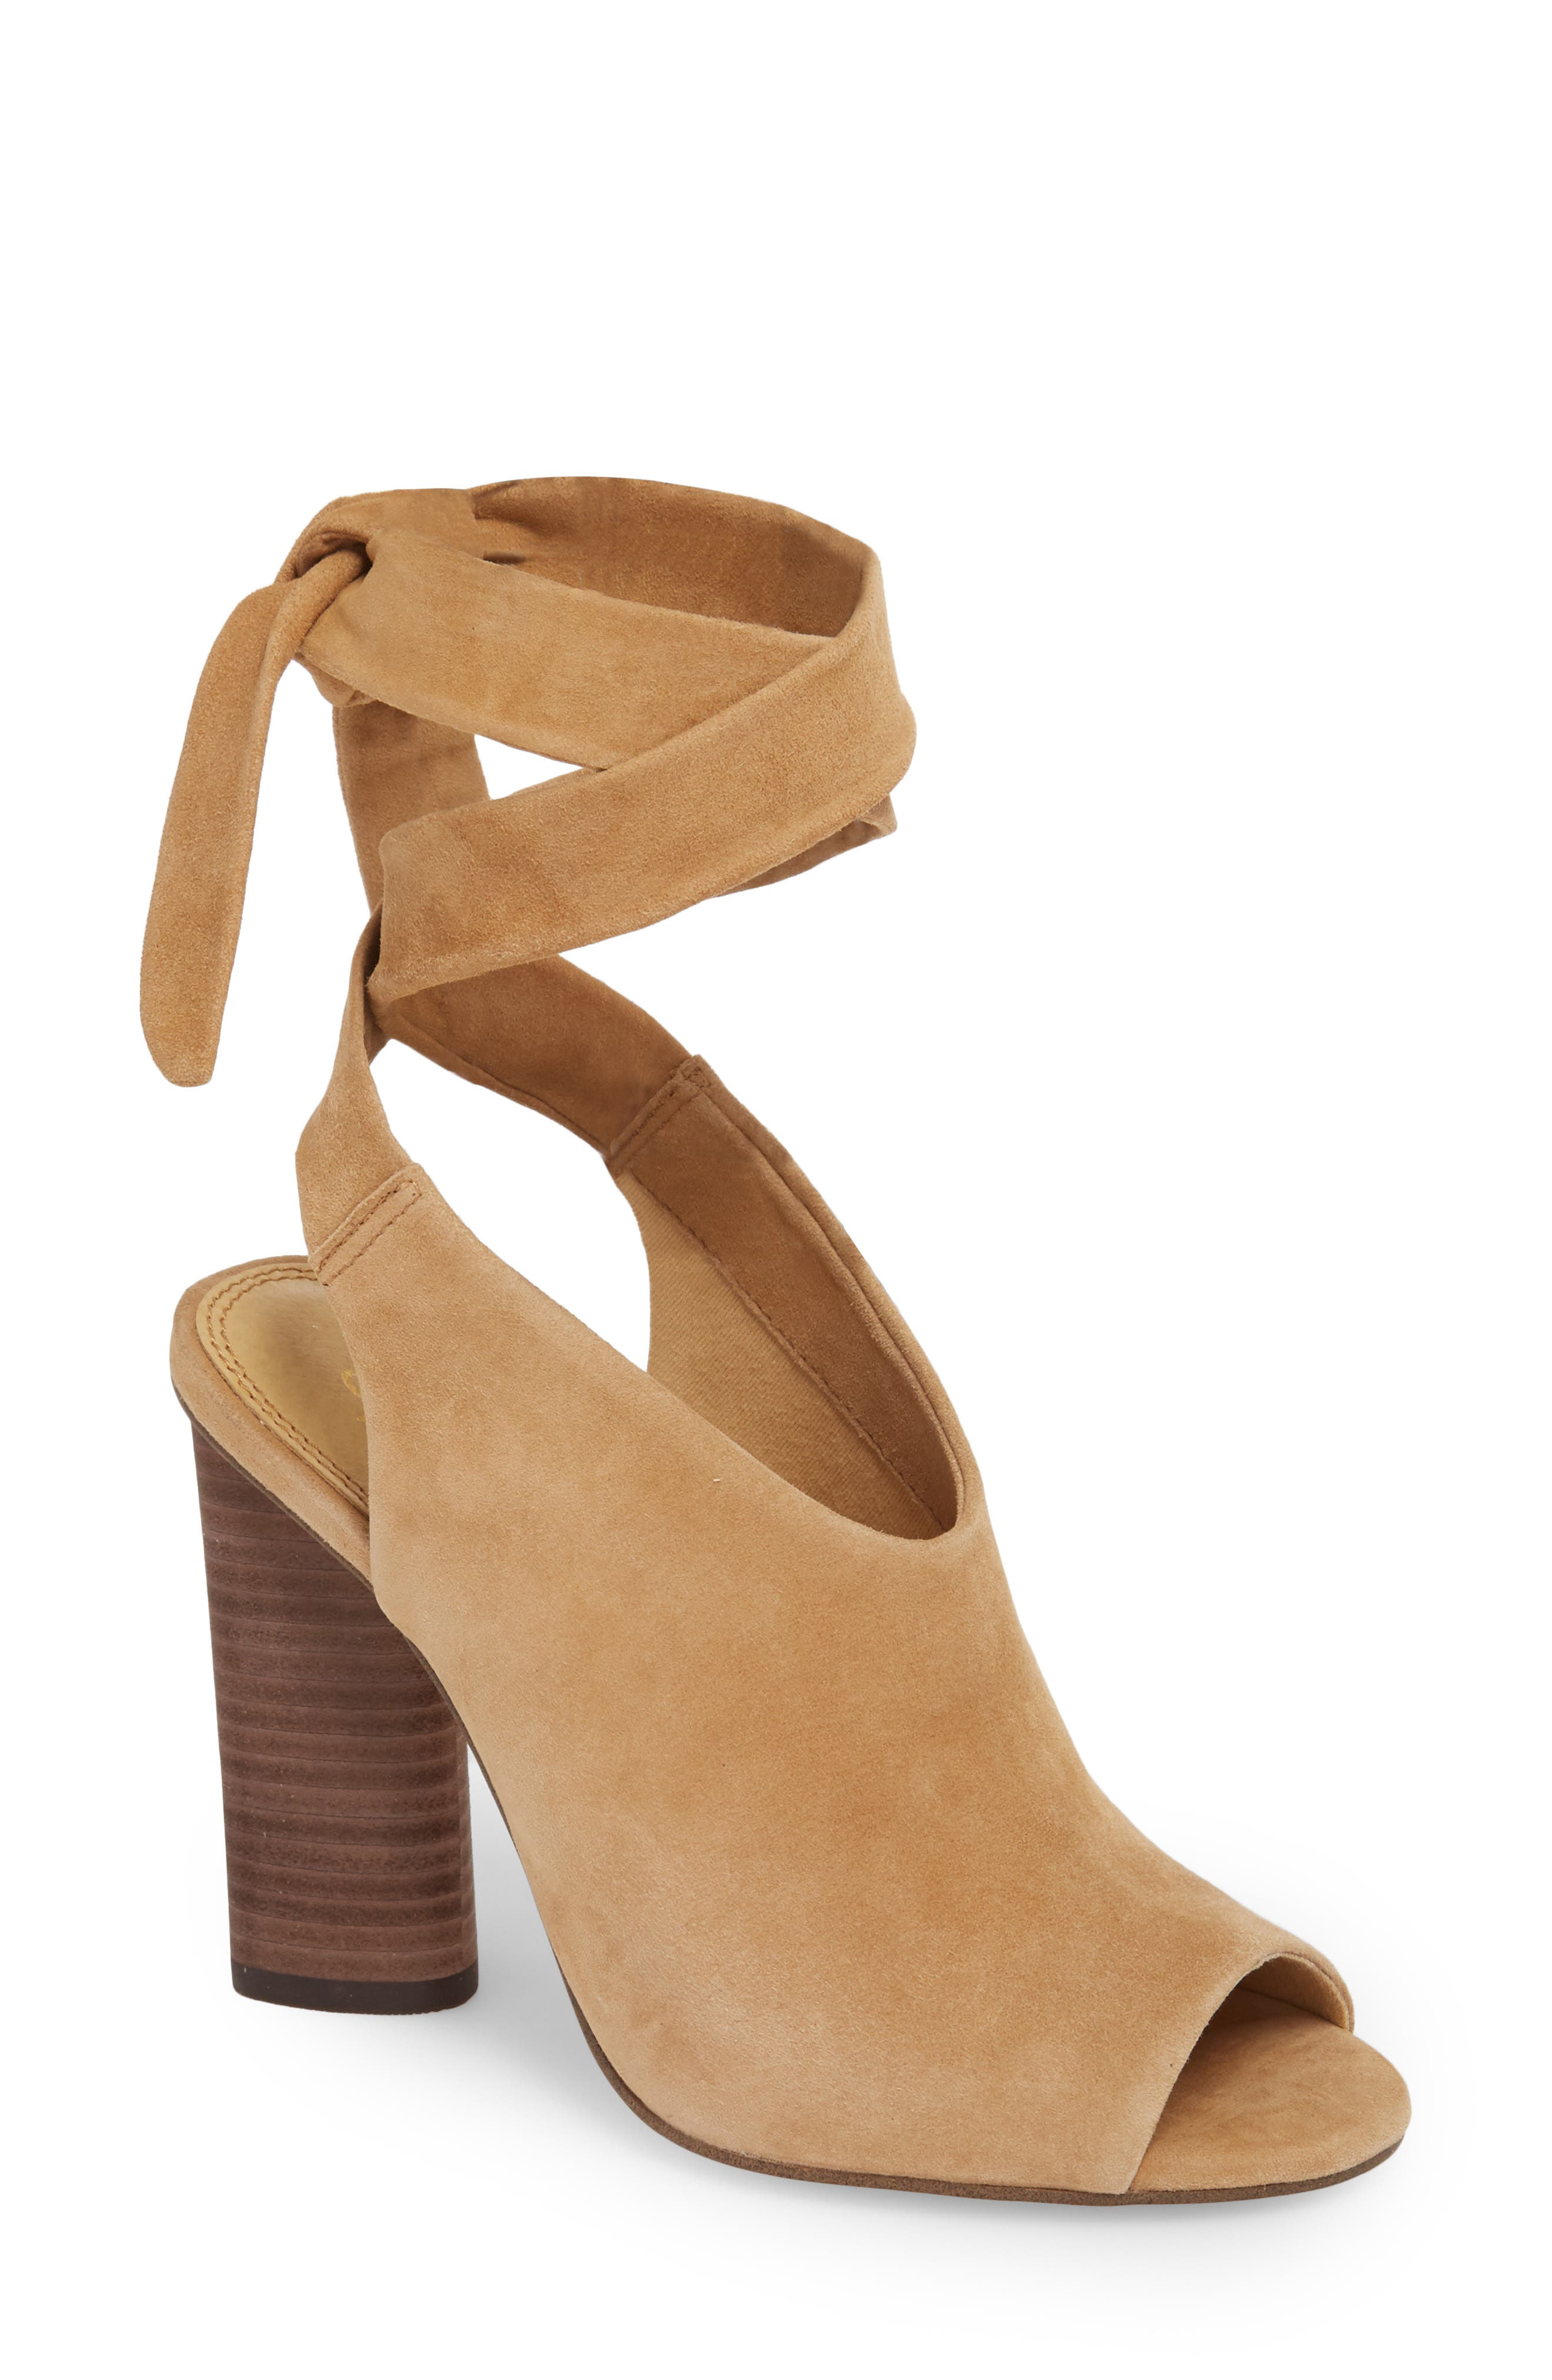 Splendid Navarro Ankle Wrap Sandal- Brown